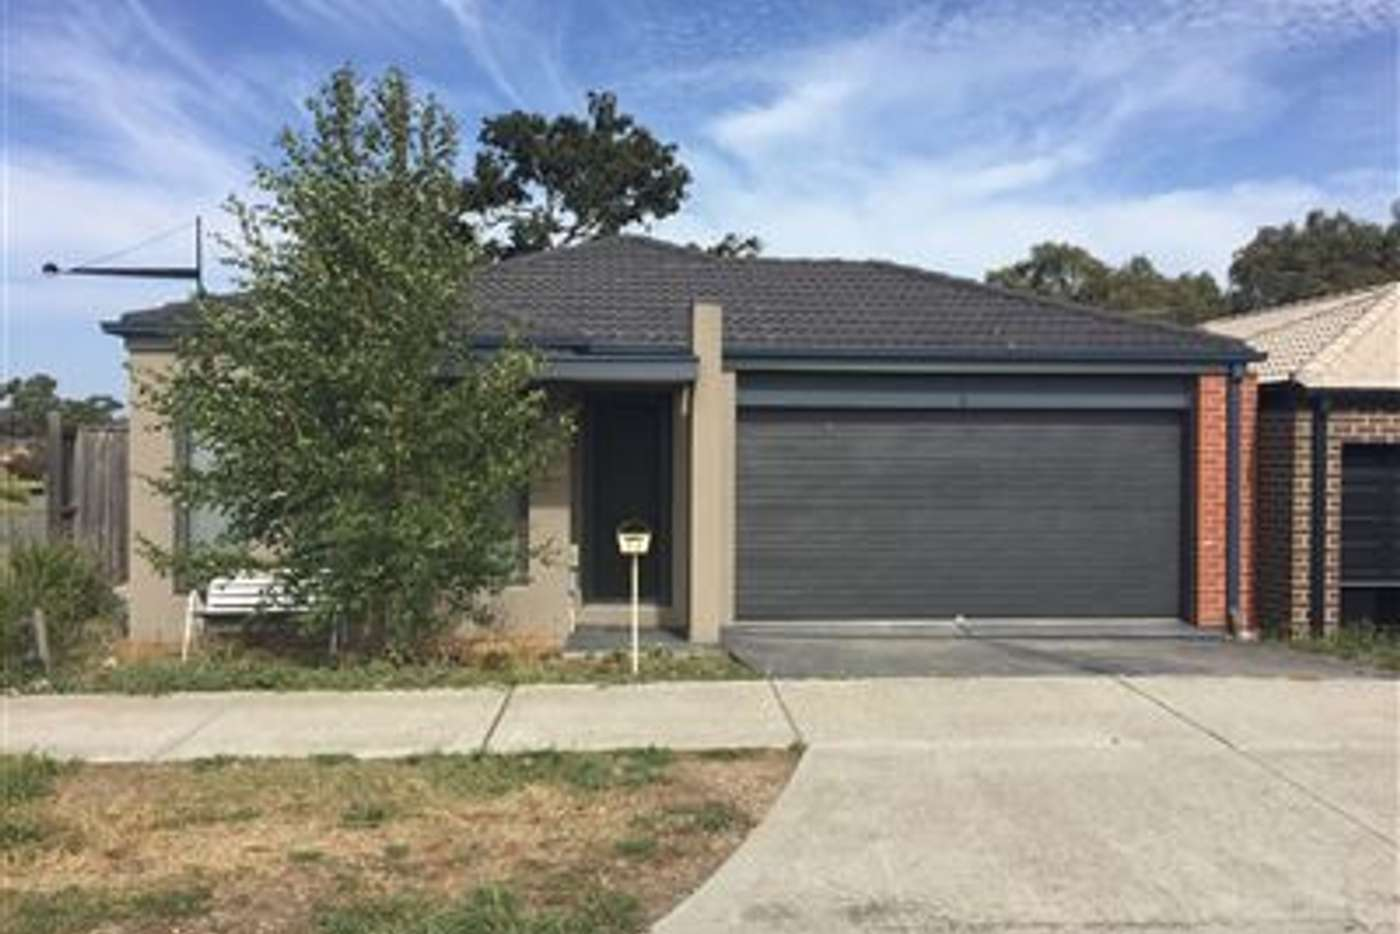 Main view of Homely house listing, 322 The Lakes Boulevard, South Morang VIC 3752